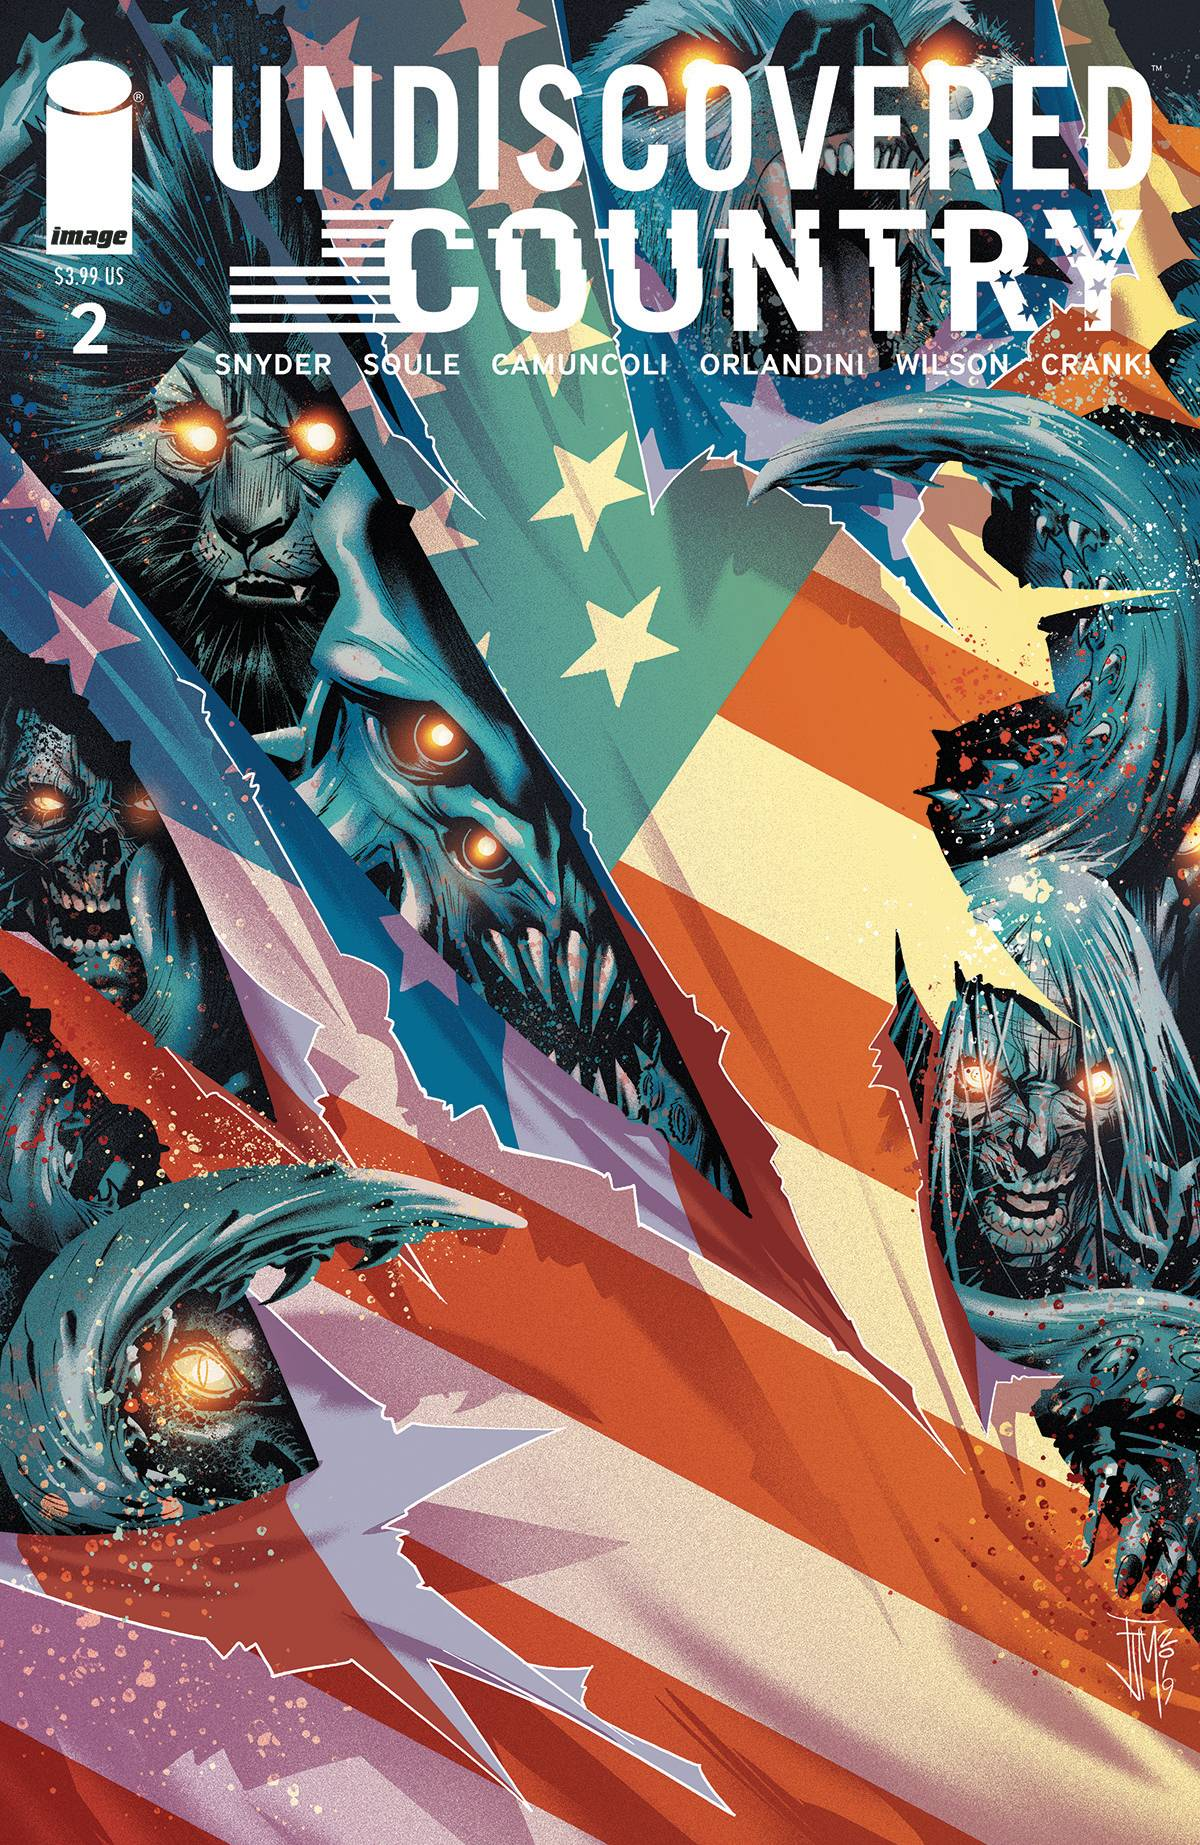 UNDISCOVERED COUNTRY #2 CVR B MANAPUL (MR)